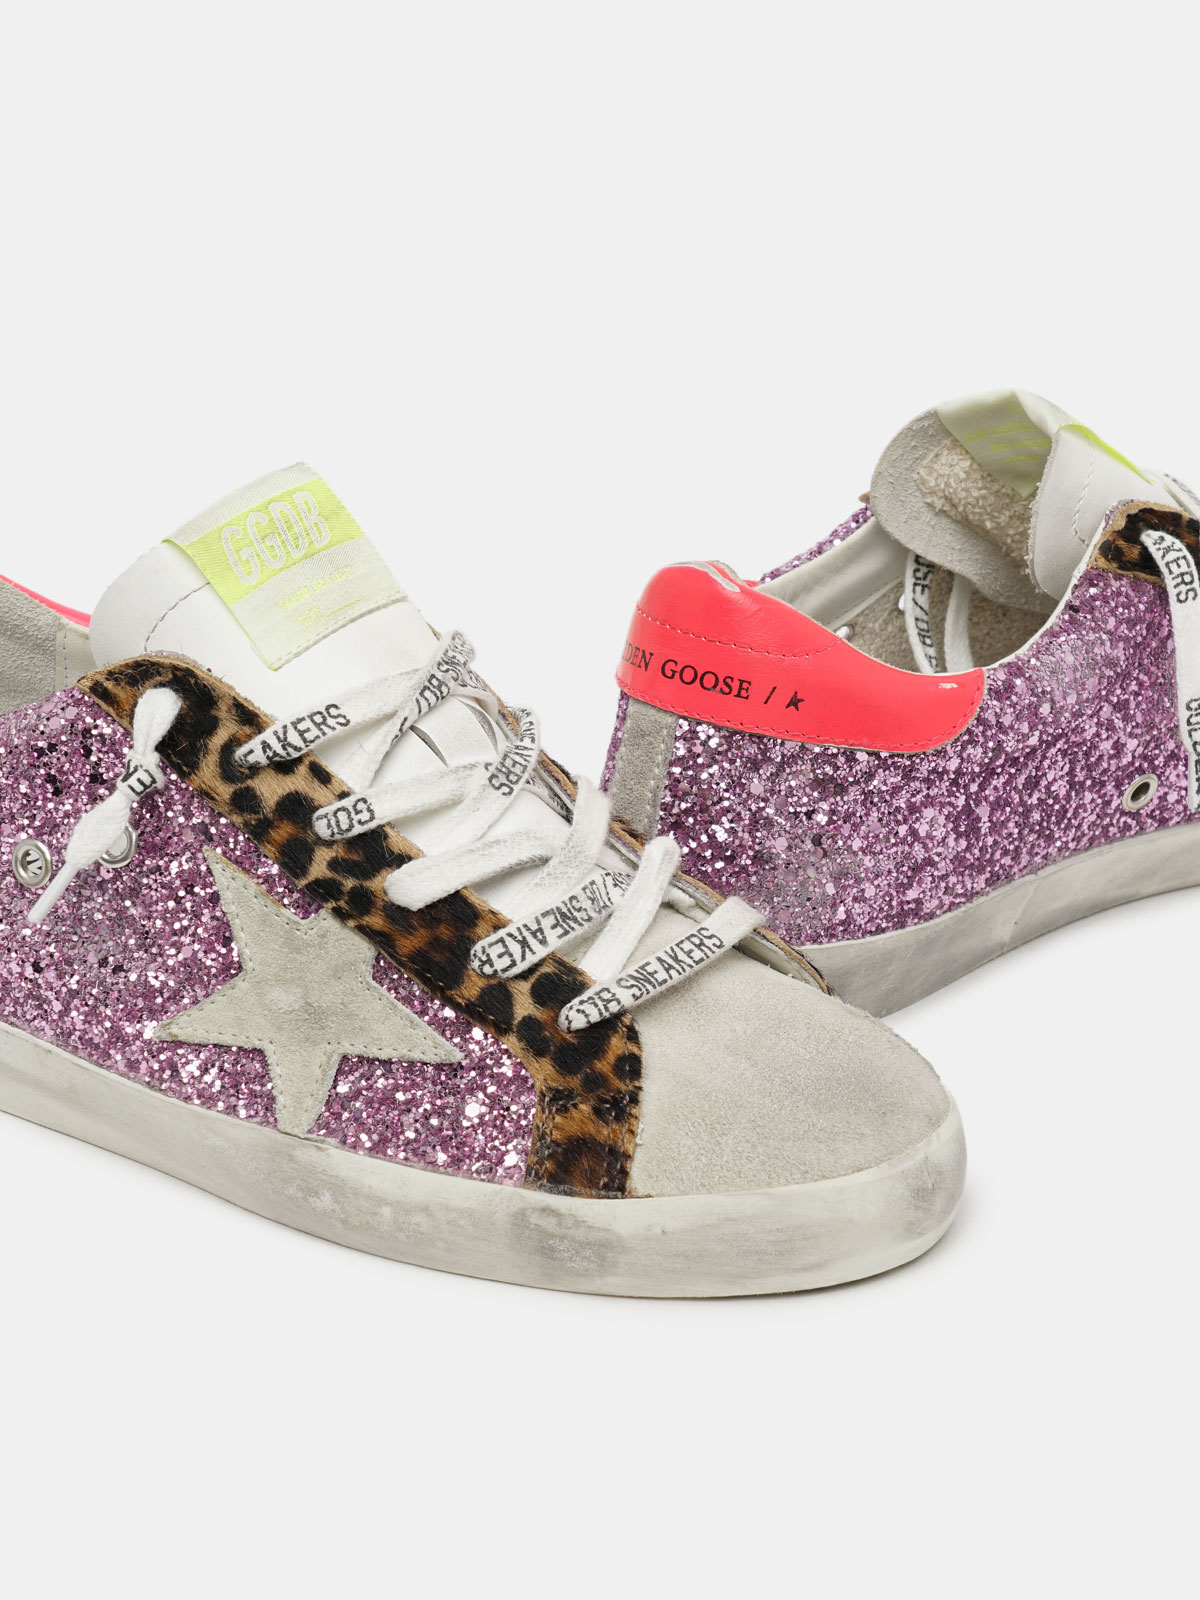 Golden Goose - Super-Star sneakers with pink glitter and leopard-print pony skin inserts in